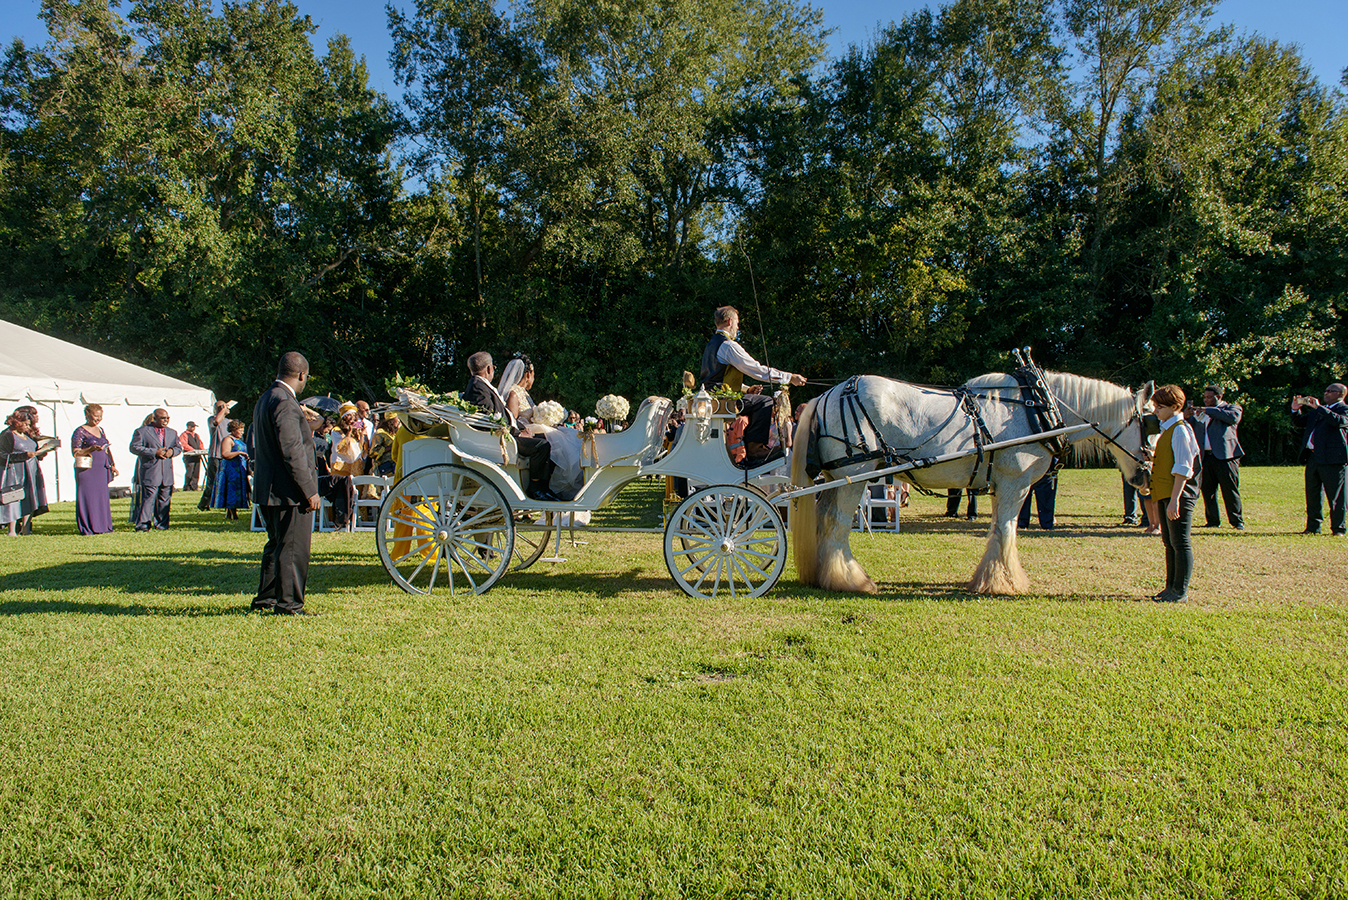 A horse drawn carriage carried Doliecha to the wedding ceremony.